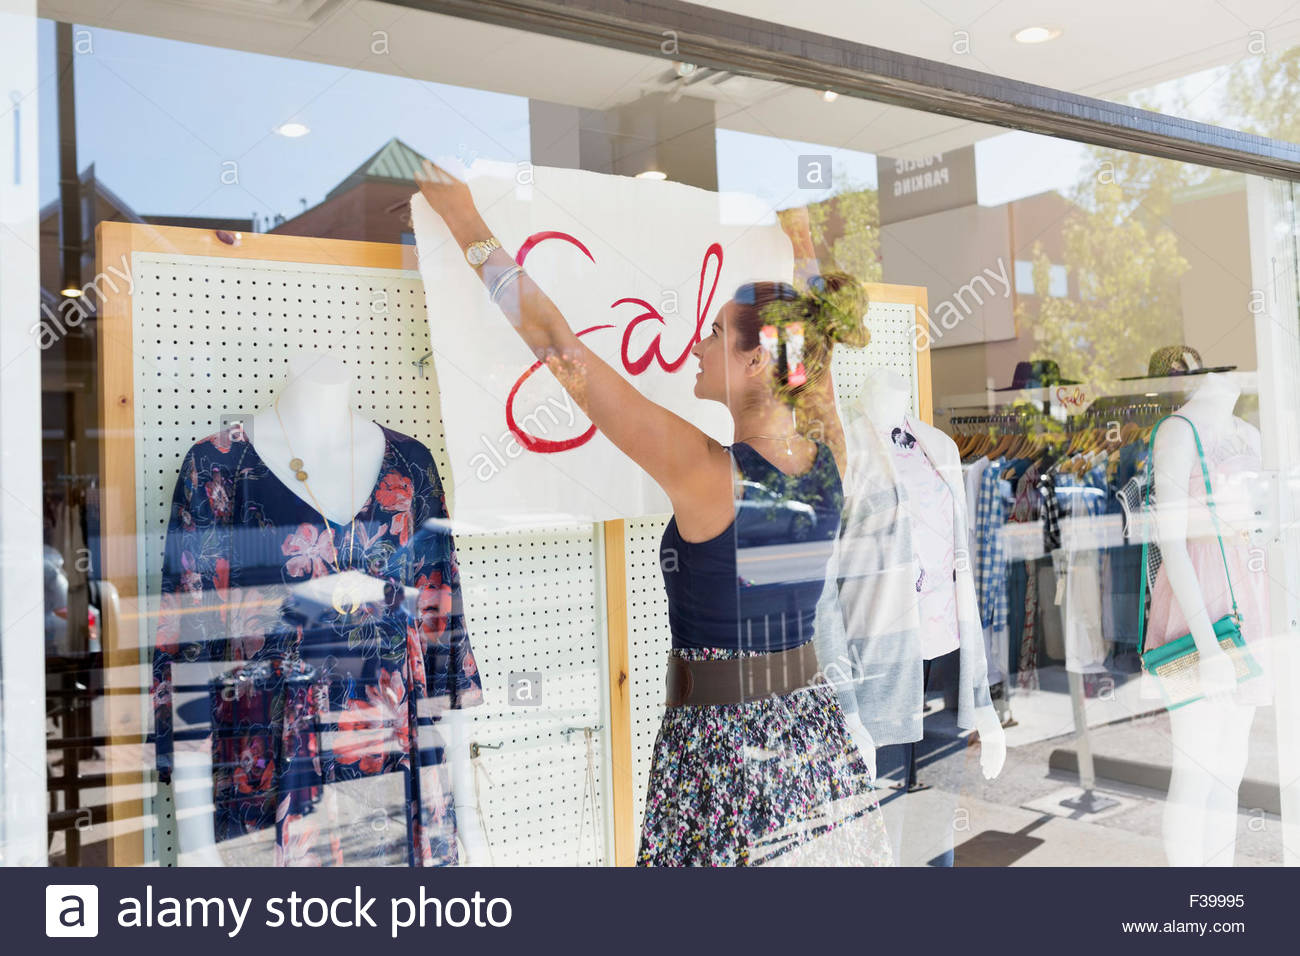 Worker hanging sale sign clothing shop window - Stock Image